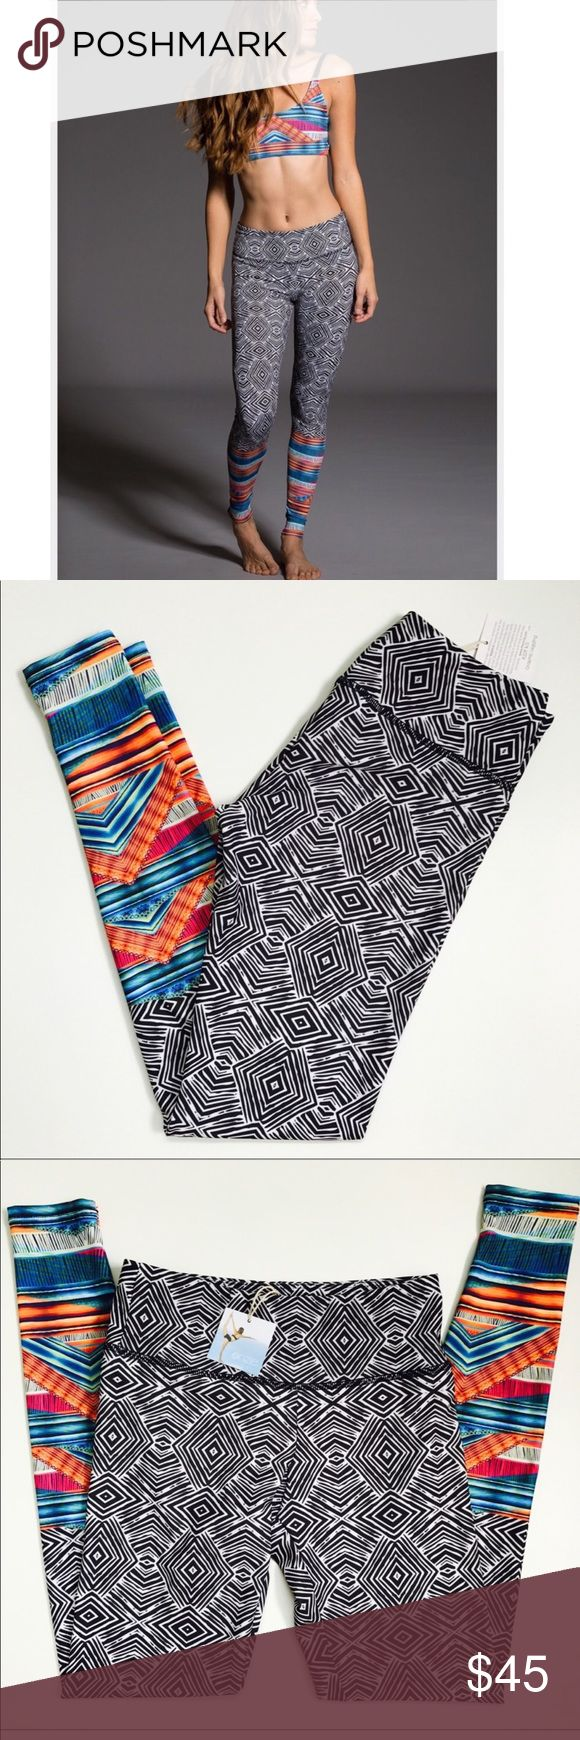 Onzie Tribal print leggings, sz xs s super cool print and comfortable fit. size s xs. very unique look, and hard to find print Onzie Pants Leggings